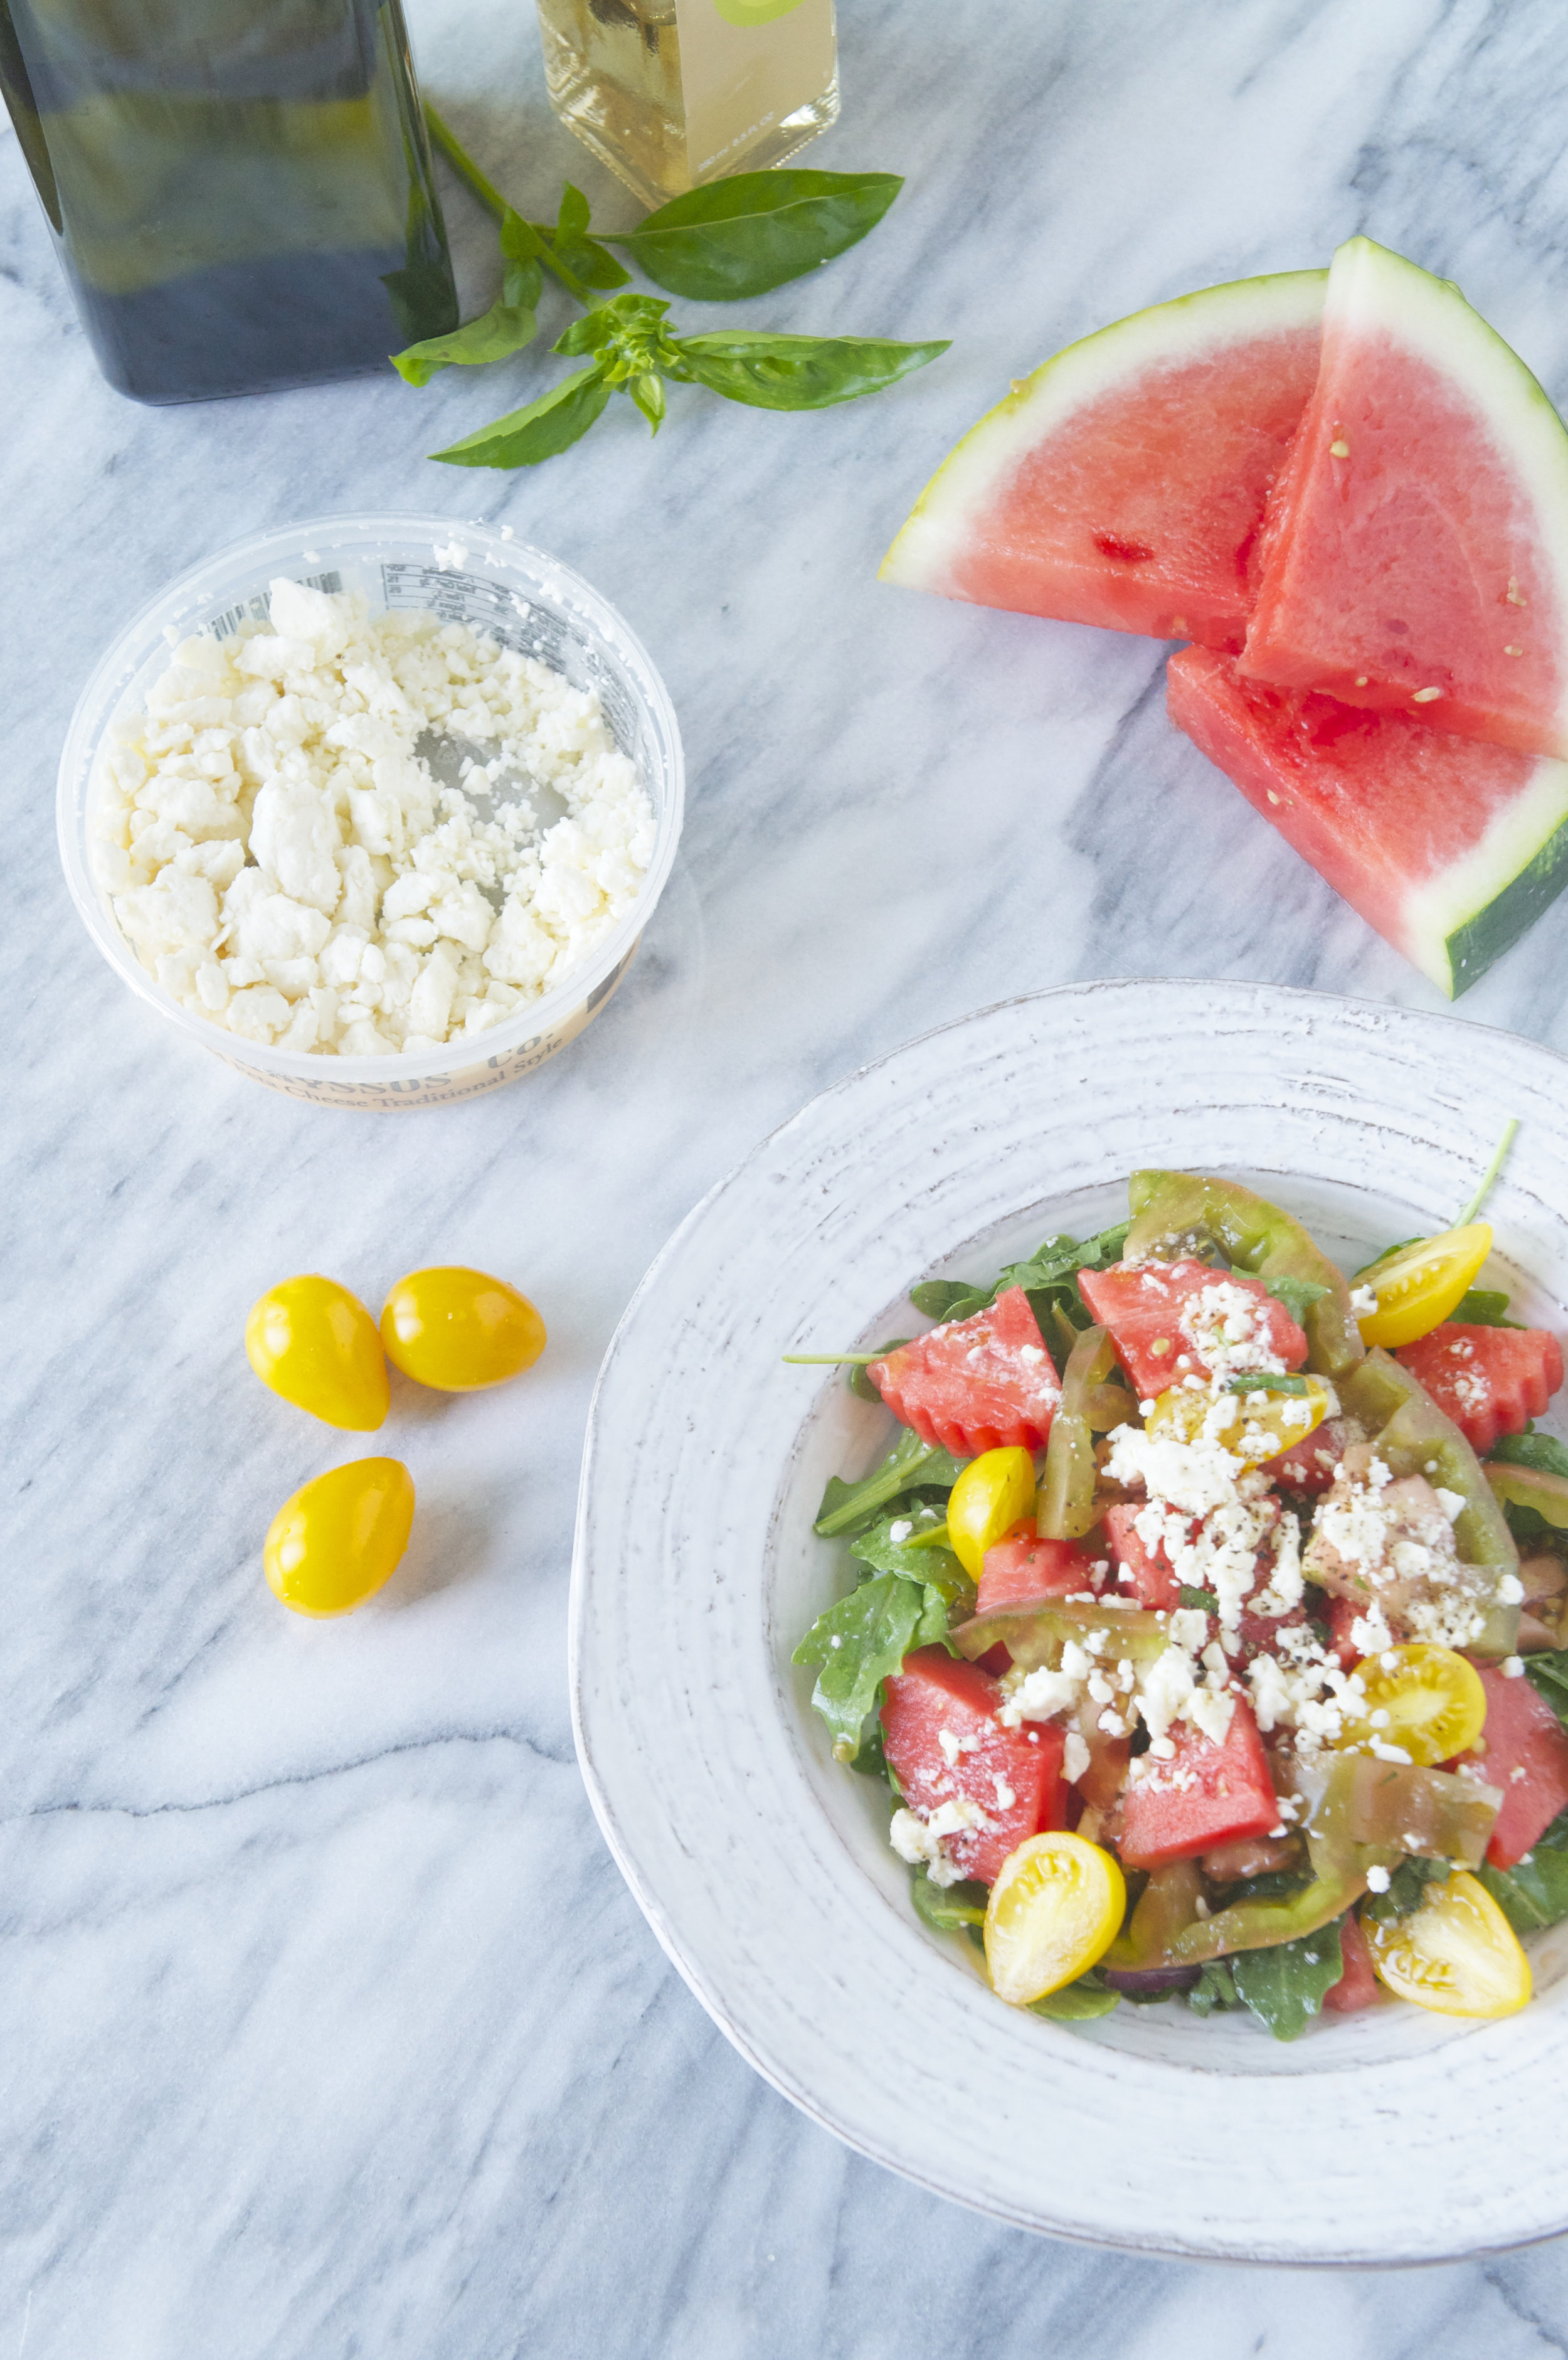 Watermelon-and-tomato-salad.jpg